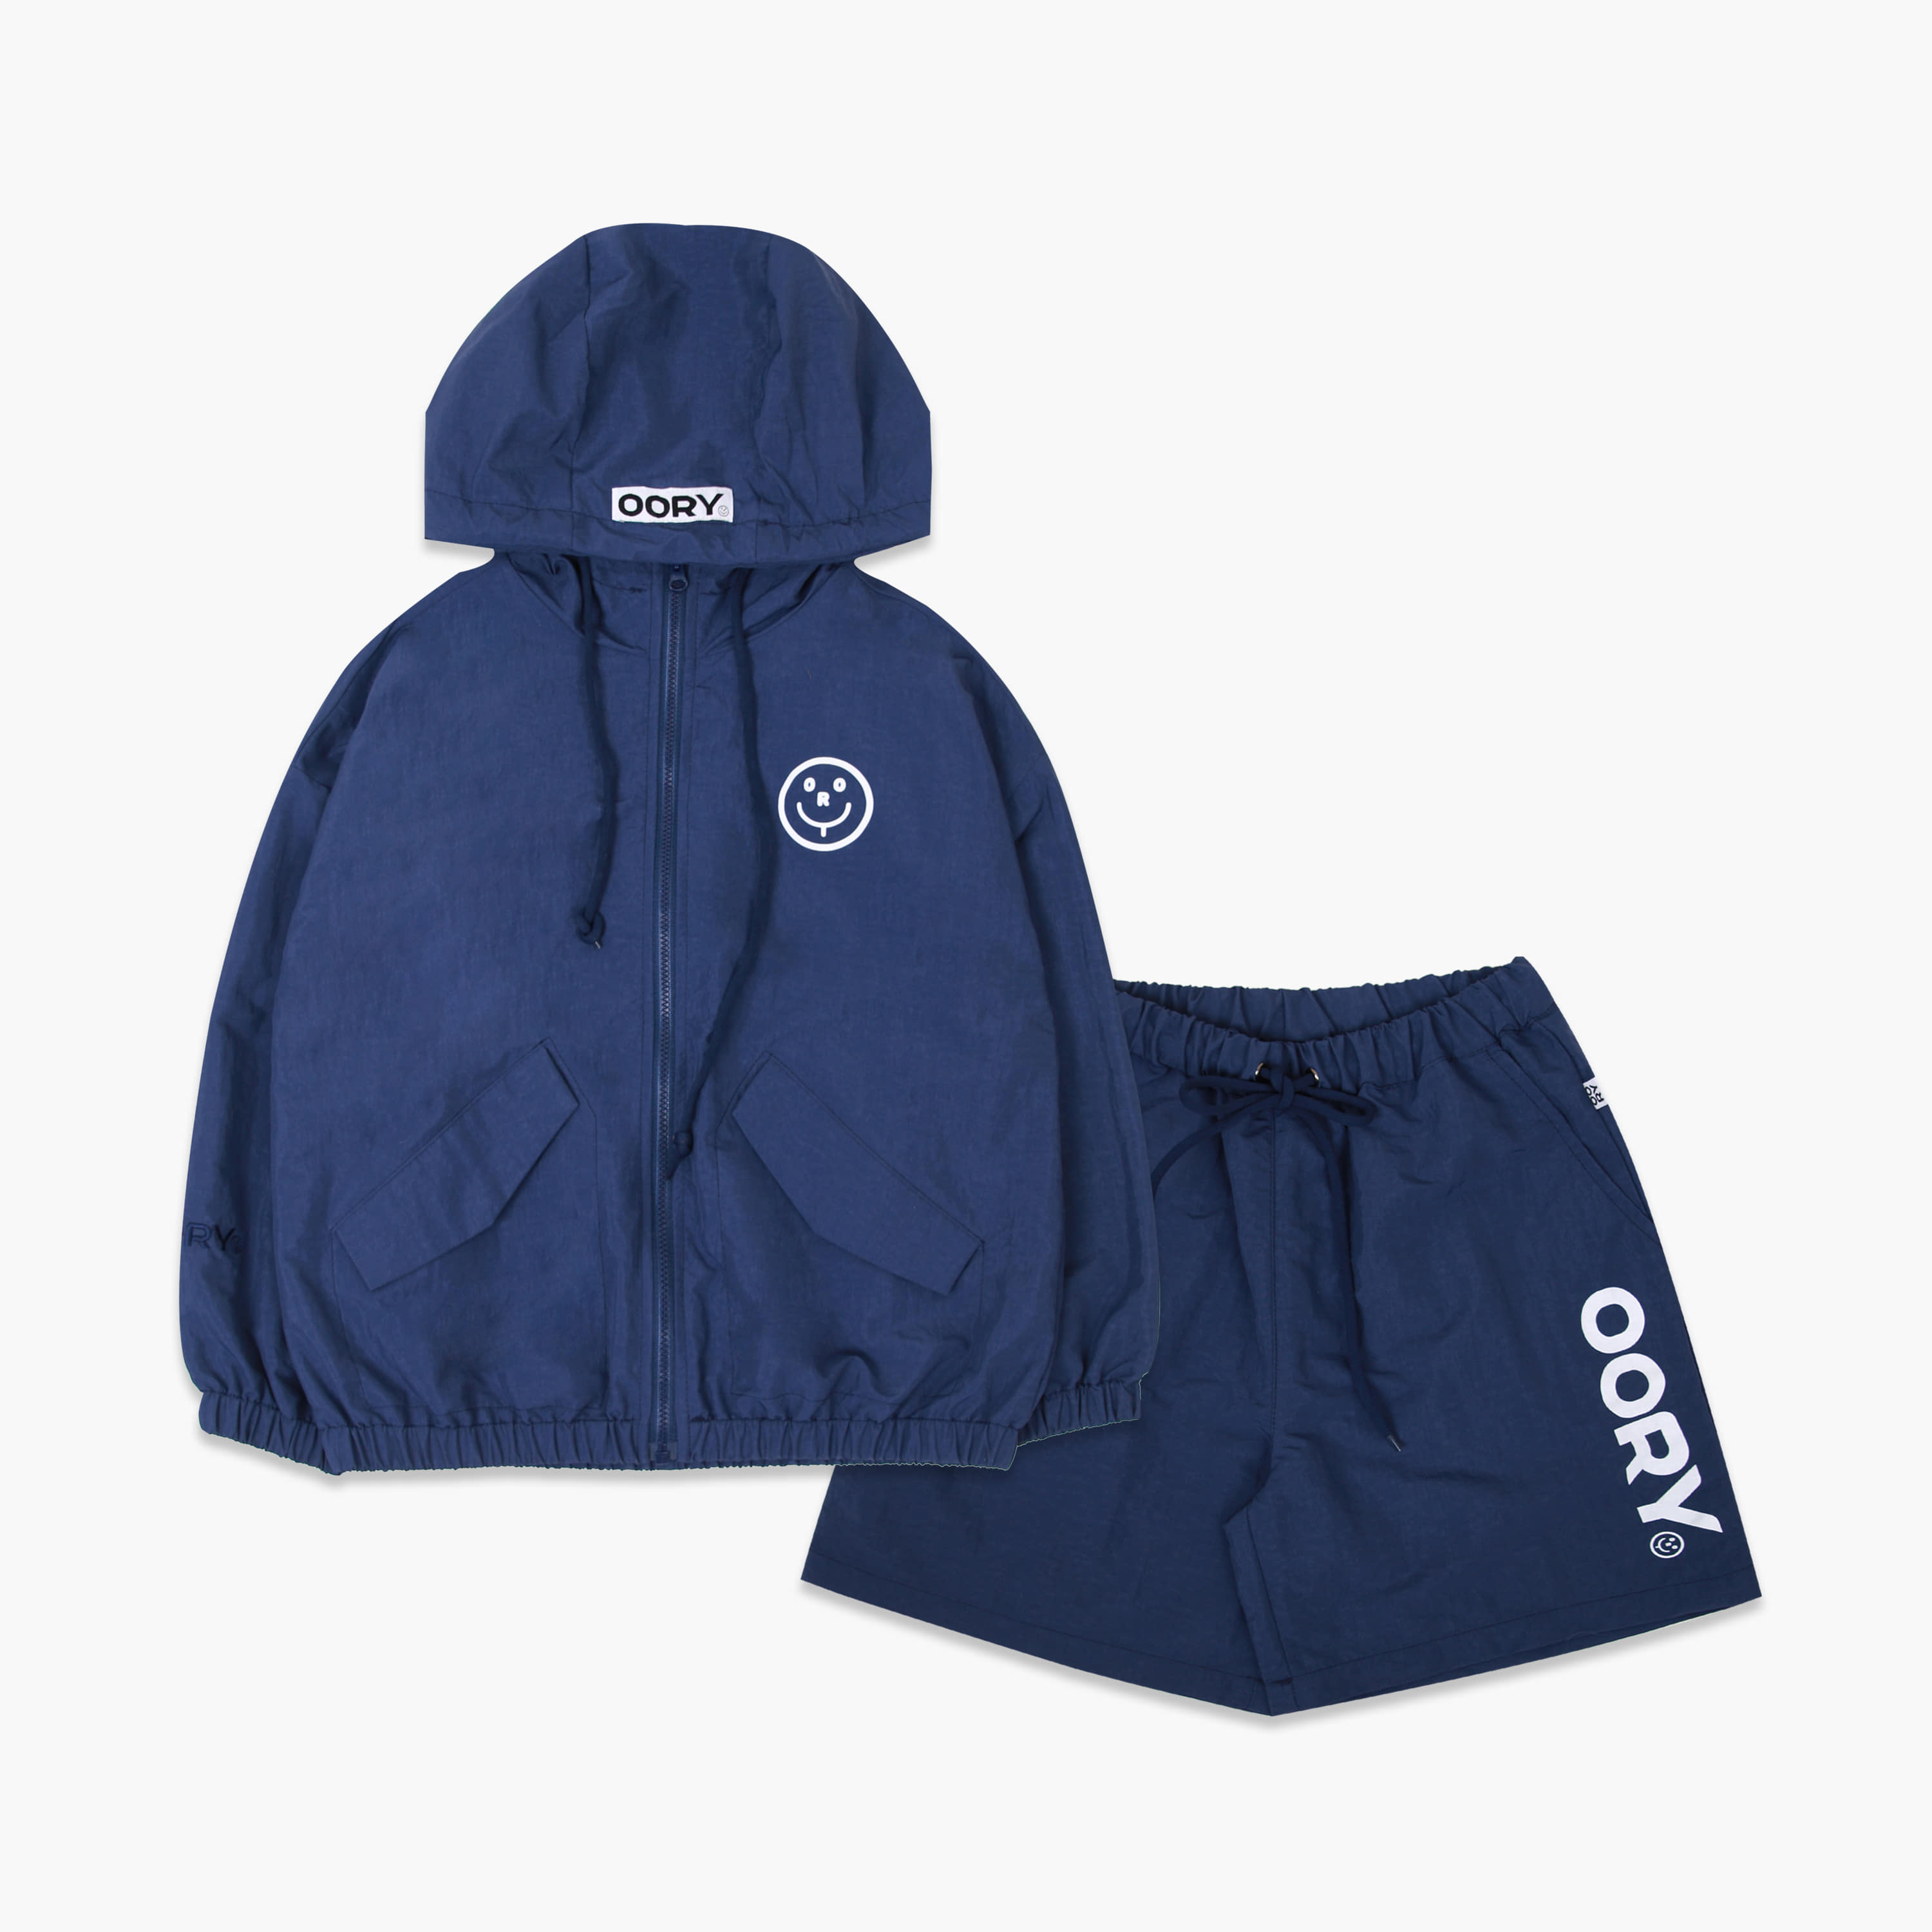 OORY 21 S/S Windbreak set - navy( 2차 입고 )